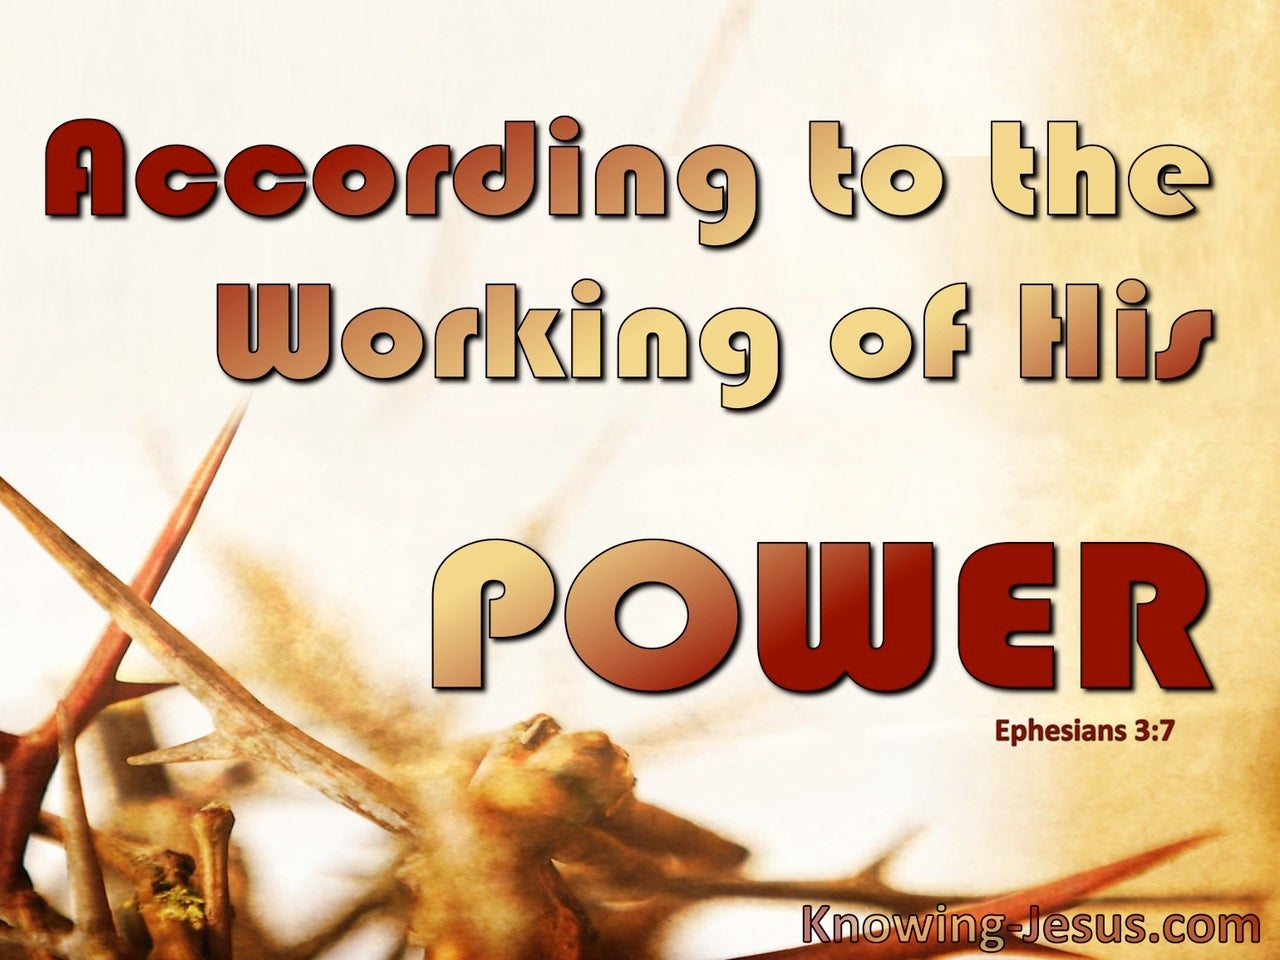 Ephesians 3:7 The Gospel Of Christ According To His Power (red)